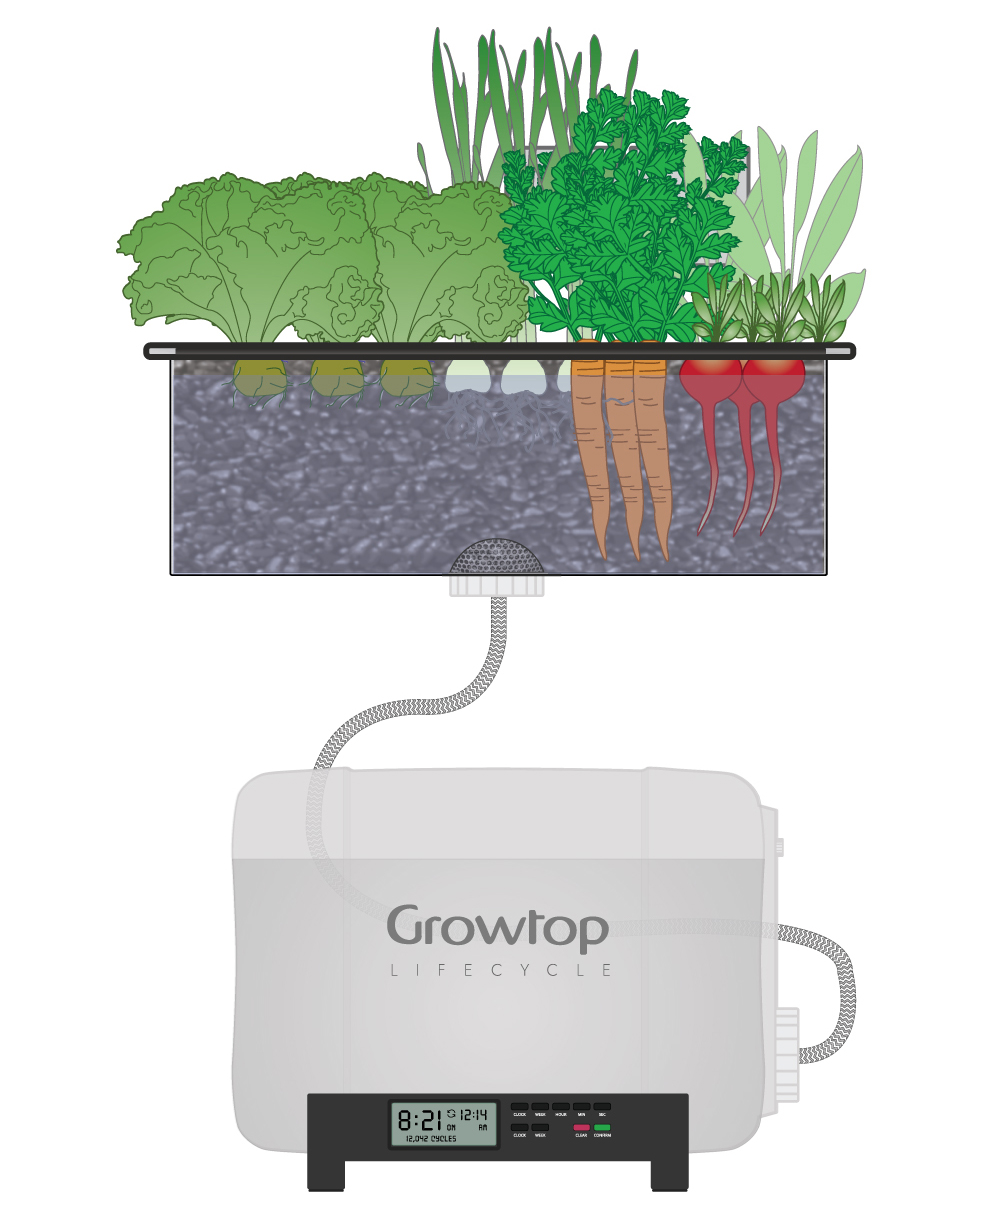 Growtop How It Works Diagram